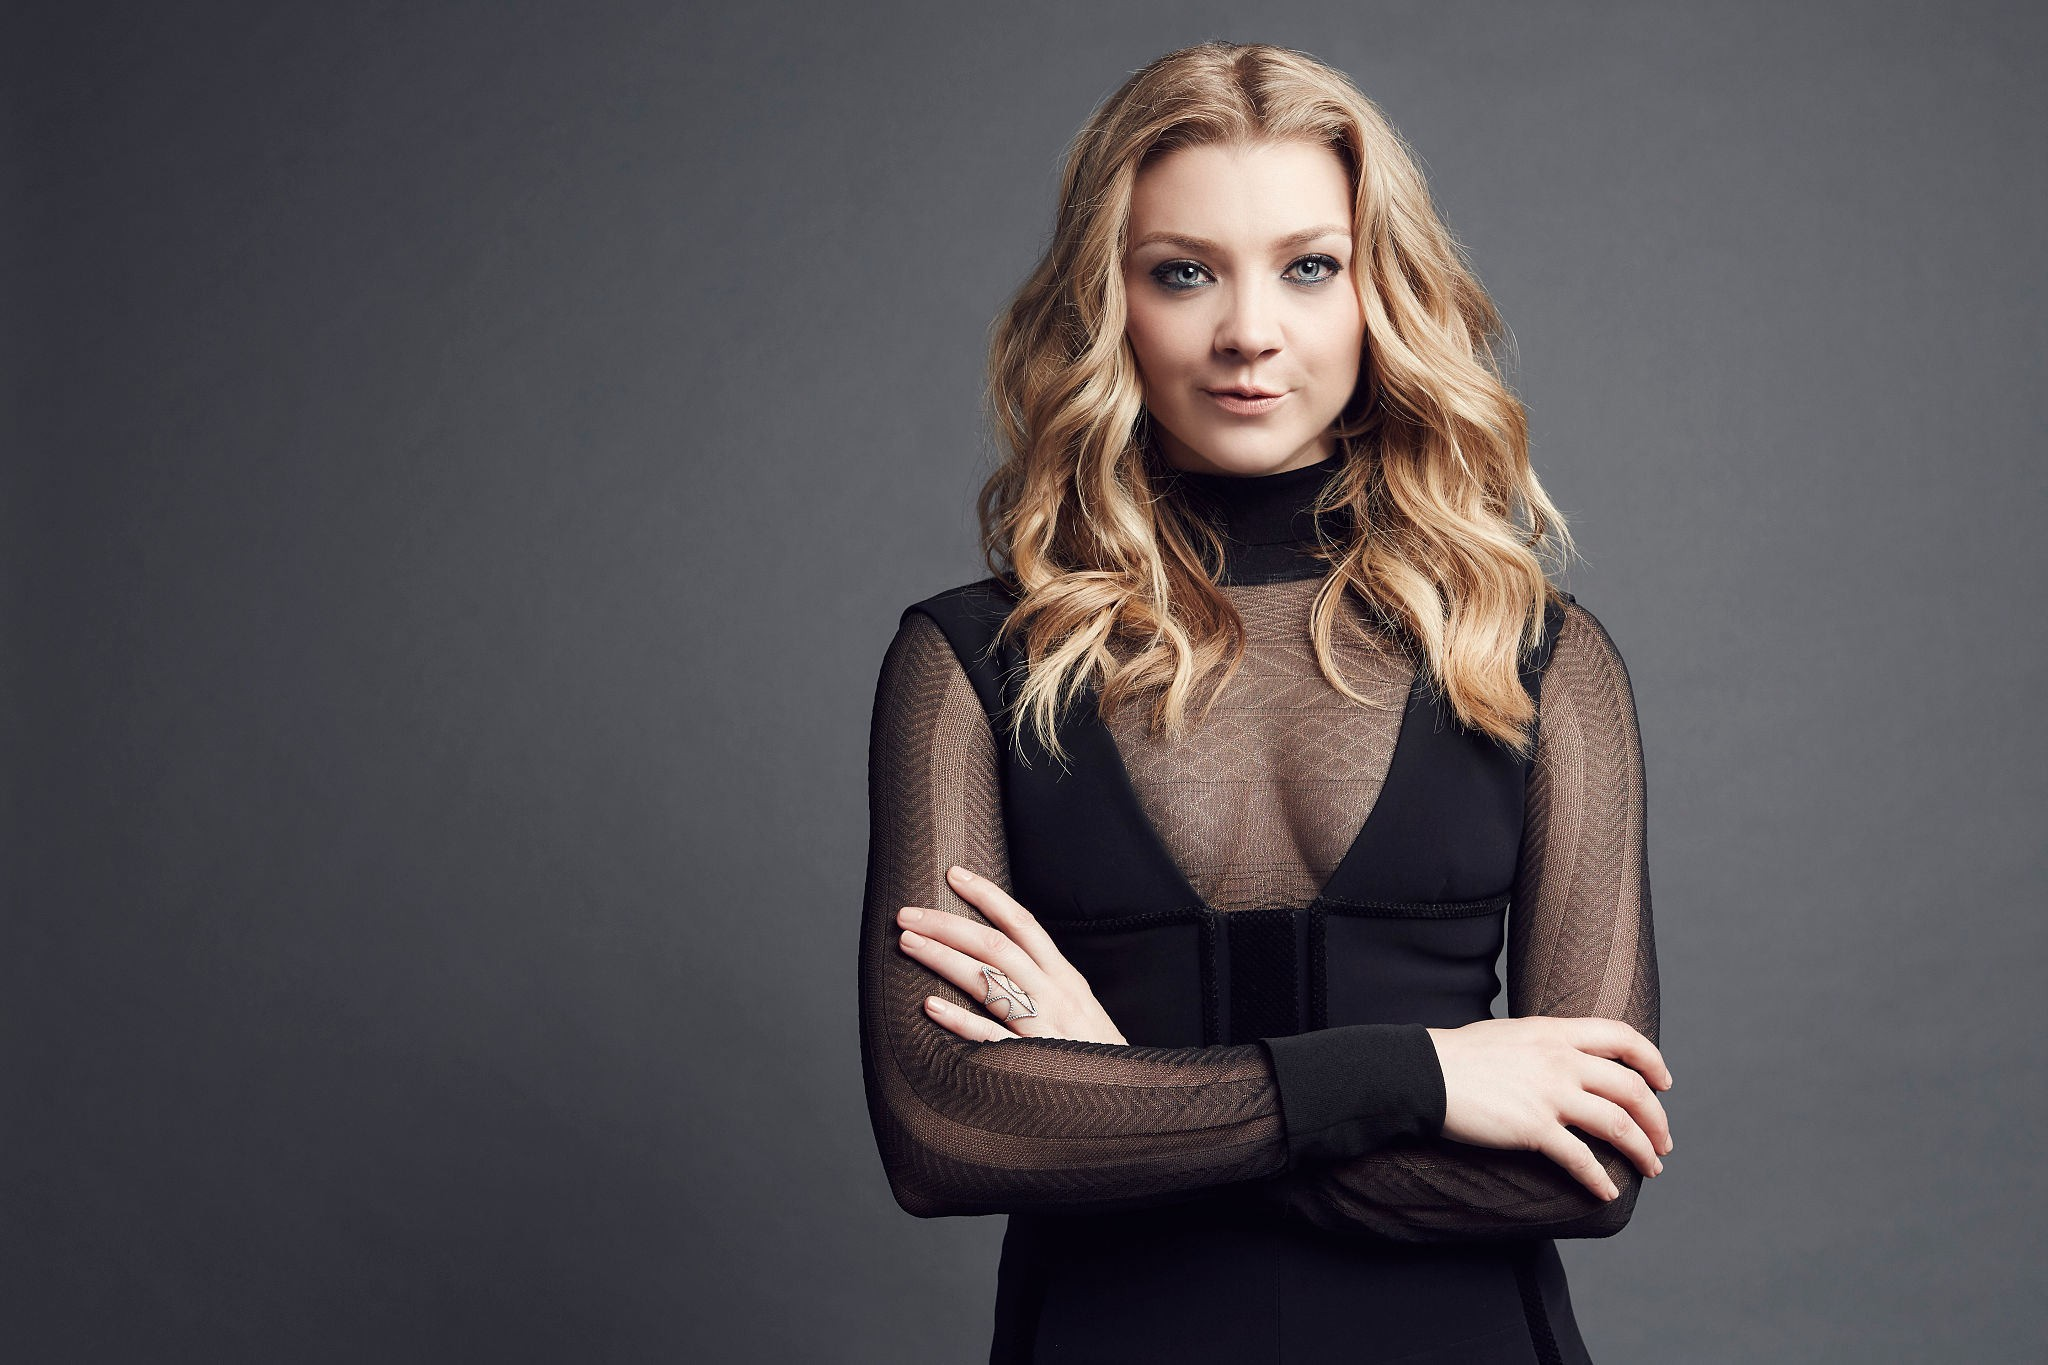 Natalie Dormer HD Wallpapers, Pictures, Images